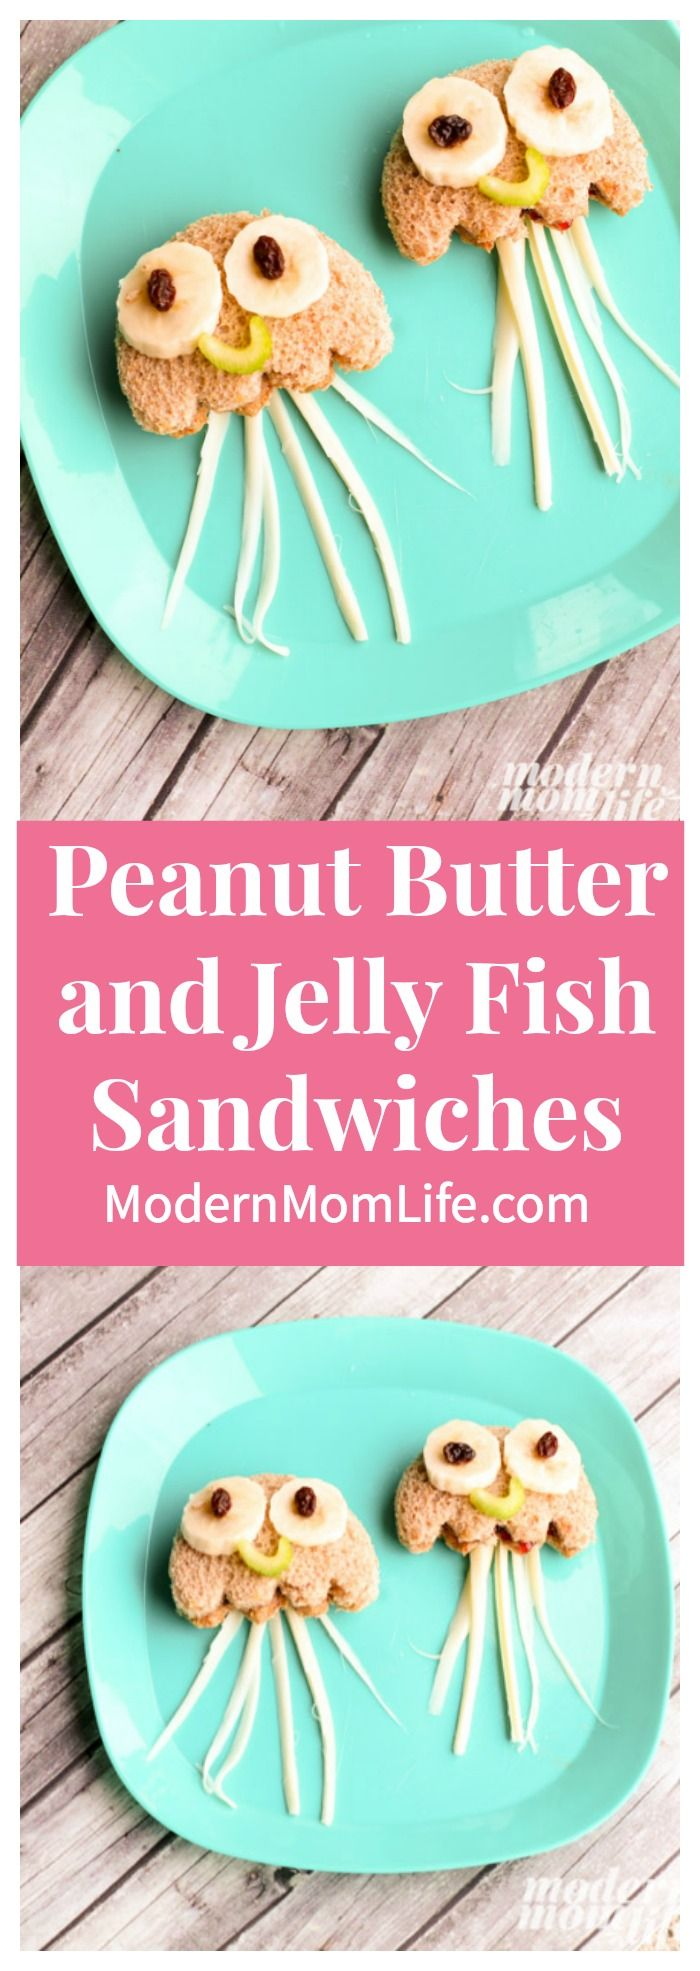 Peanut Butter & Jellyfish Sandwiches your family will love. This is a unique twist on the classic PB&J sandwich and promises to please even the pickiest eaters. Makes a great school lunch idea. #ad #FindingDory via @amodernmomlife